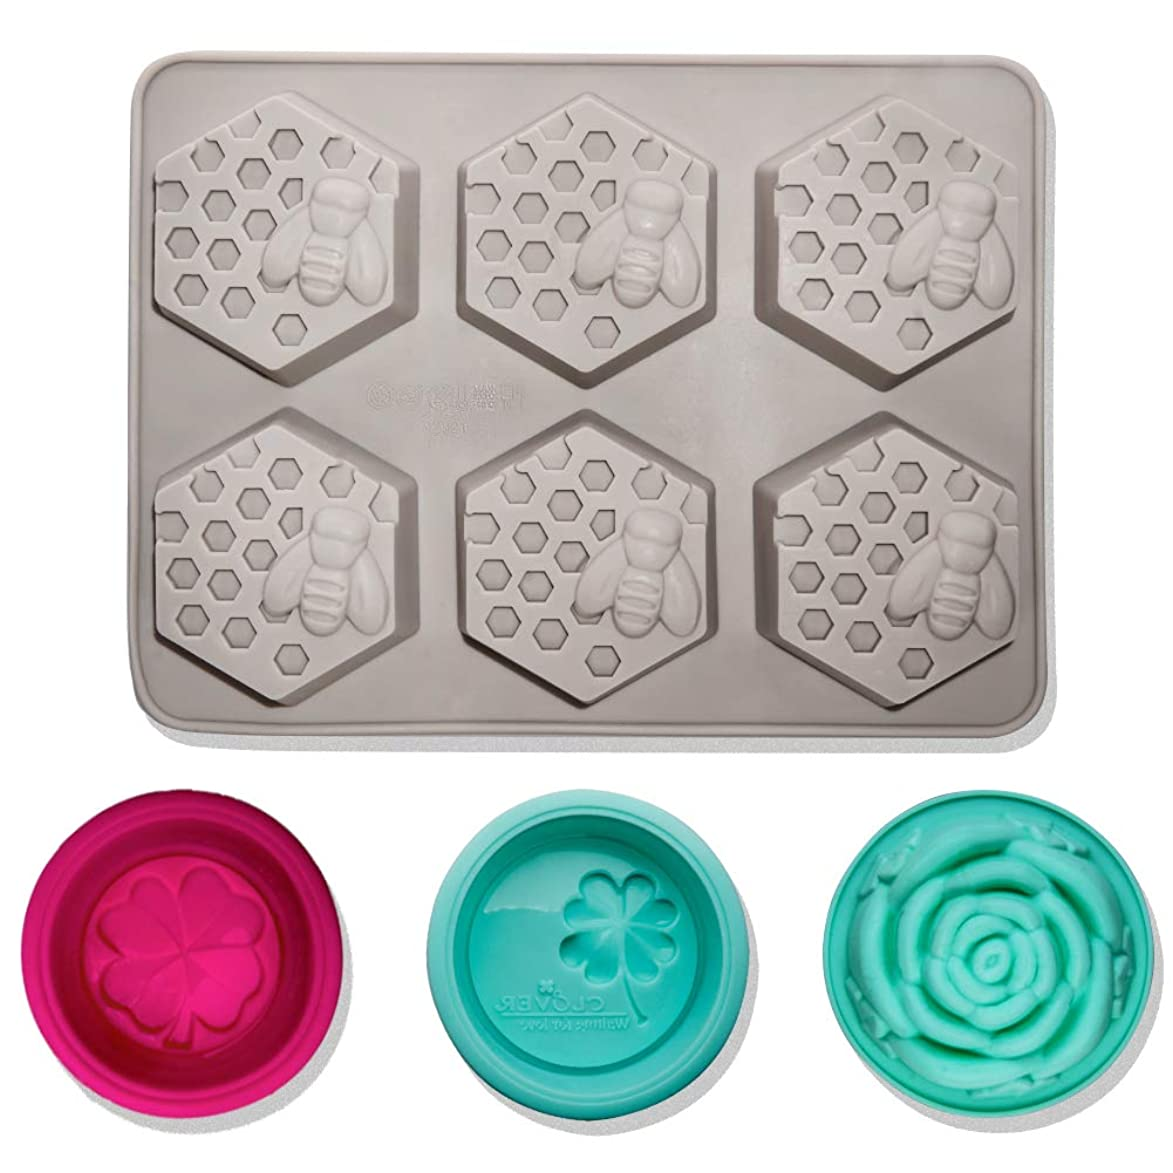 4 pcs Silicone Soap Molds, CNYMANY 3D Bee Honeycomb Shape Muffin Mould Kitchen Pastry Baking Pan for Candle Cake Jello Bath Bomb Candy Cupcake - Grey xvm883206272062